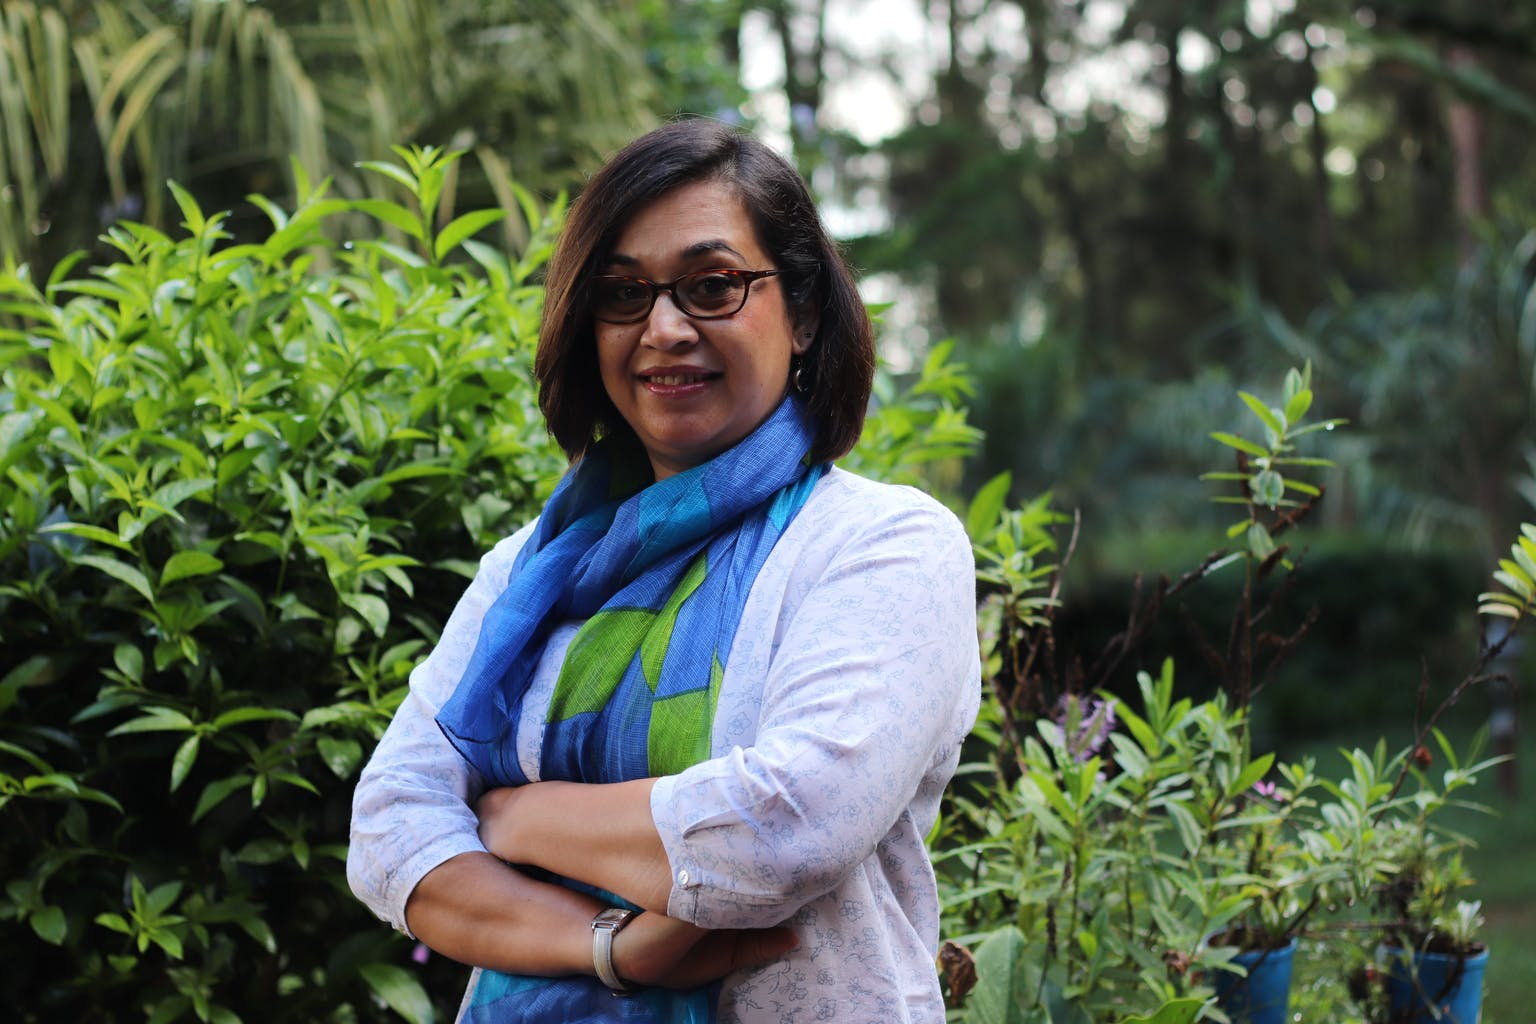 SEEMA STEM. SEEMA Woman Parinita Bhattacharjee, Senior technical advisor for HIV Prevention, Africa Programmes, University of Manitoba, Kenya. SEEMA network. SEEMA woman. SEEMA STEM. SEEMA is the global network empowering South Asian women leaders globally.